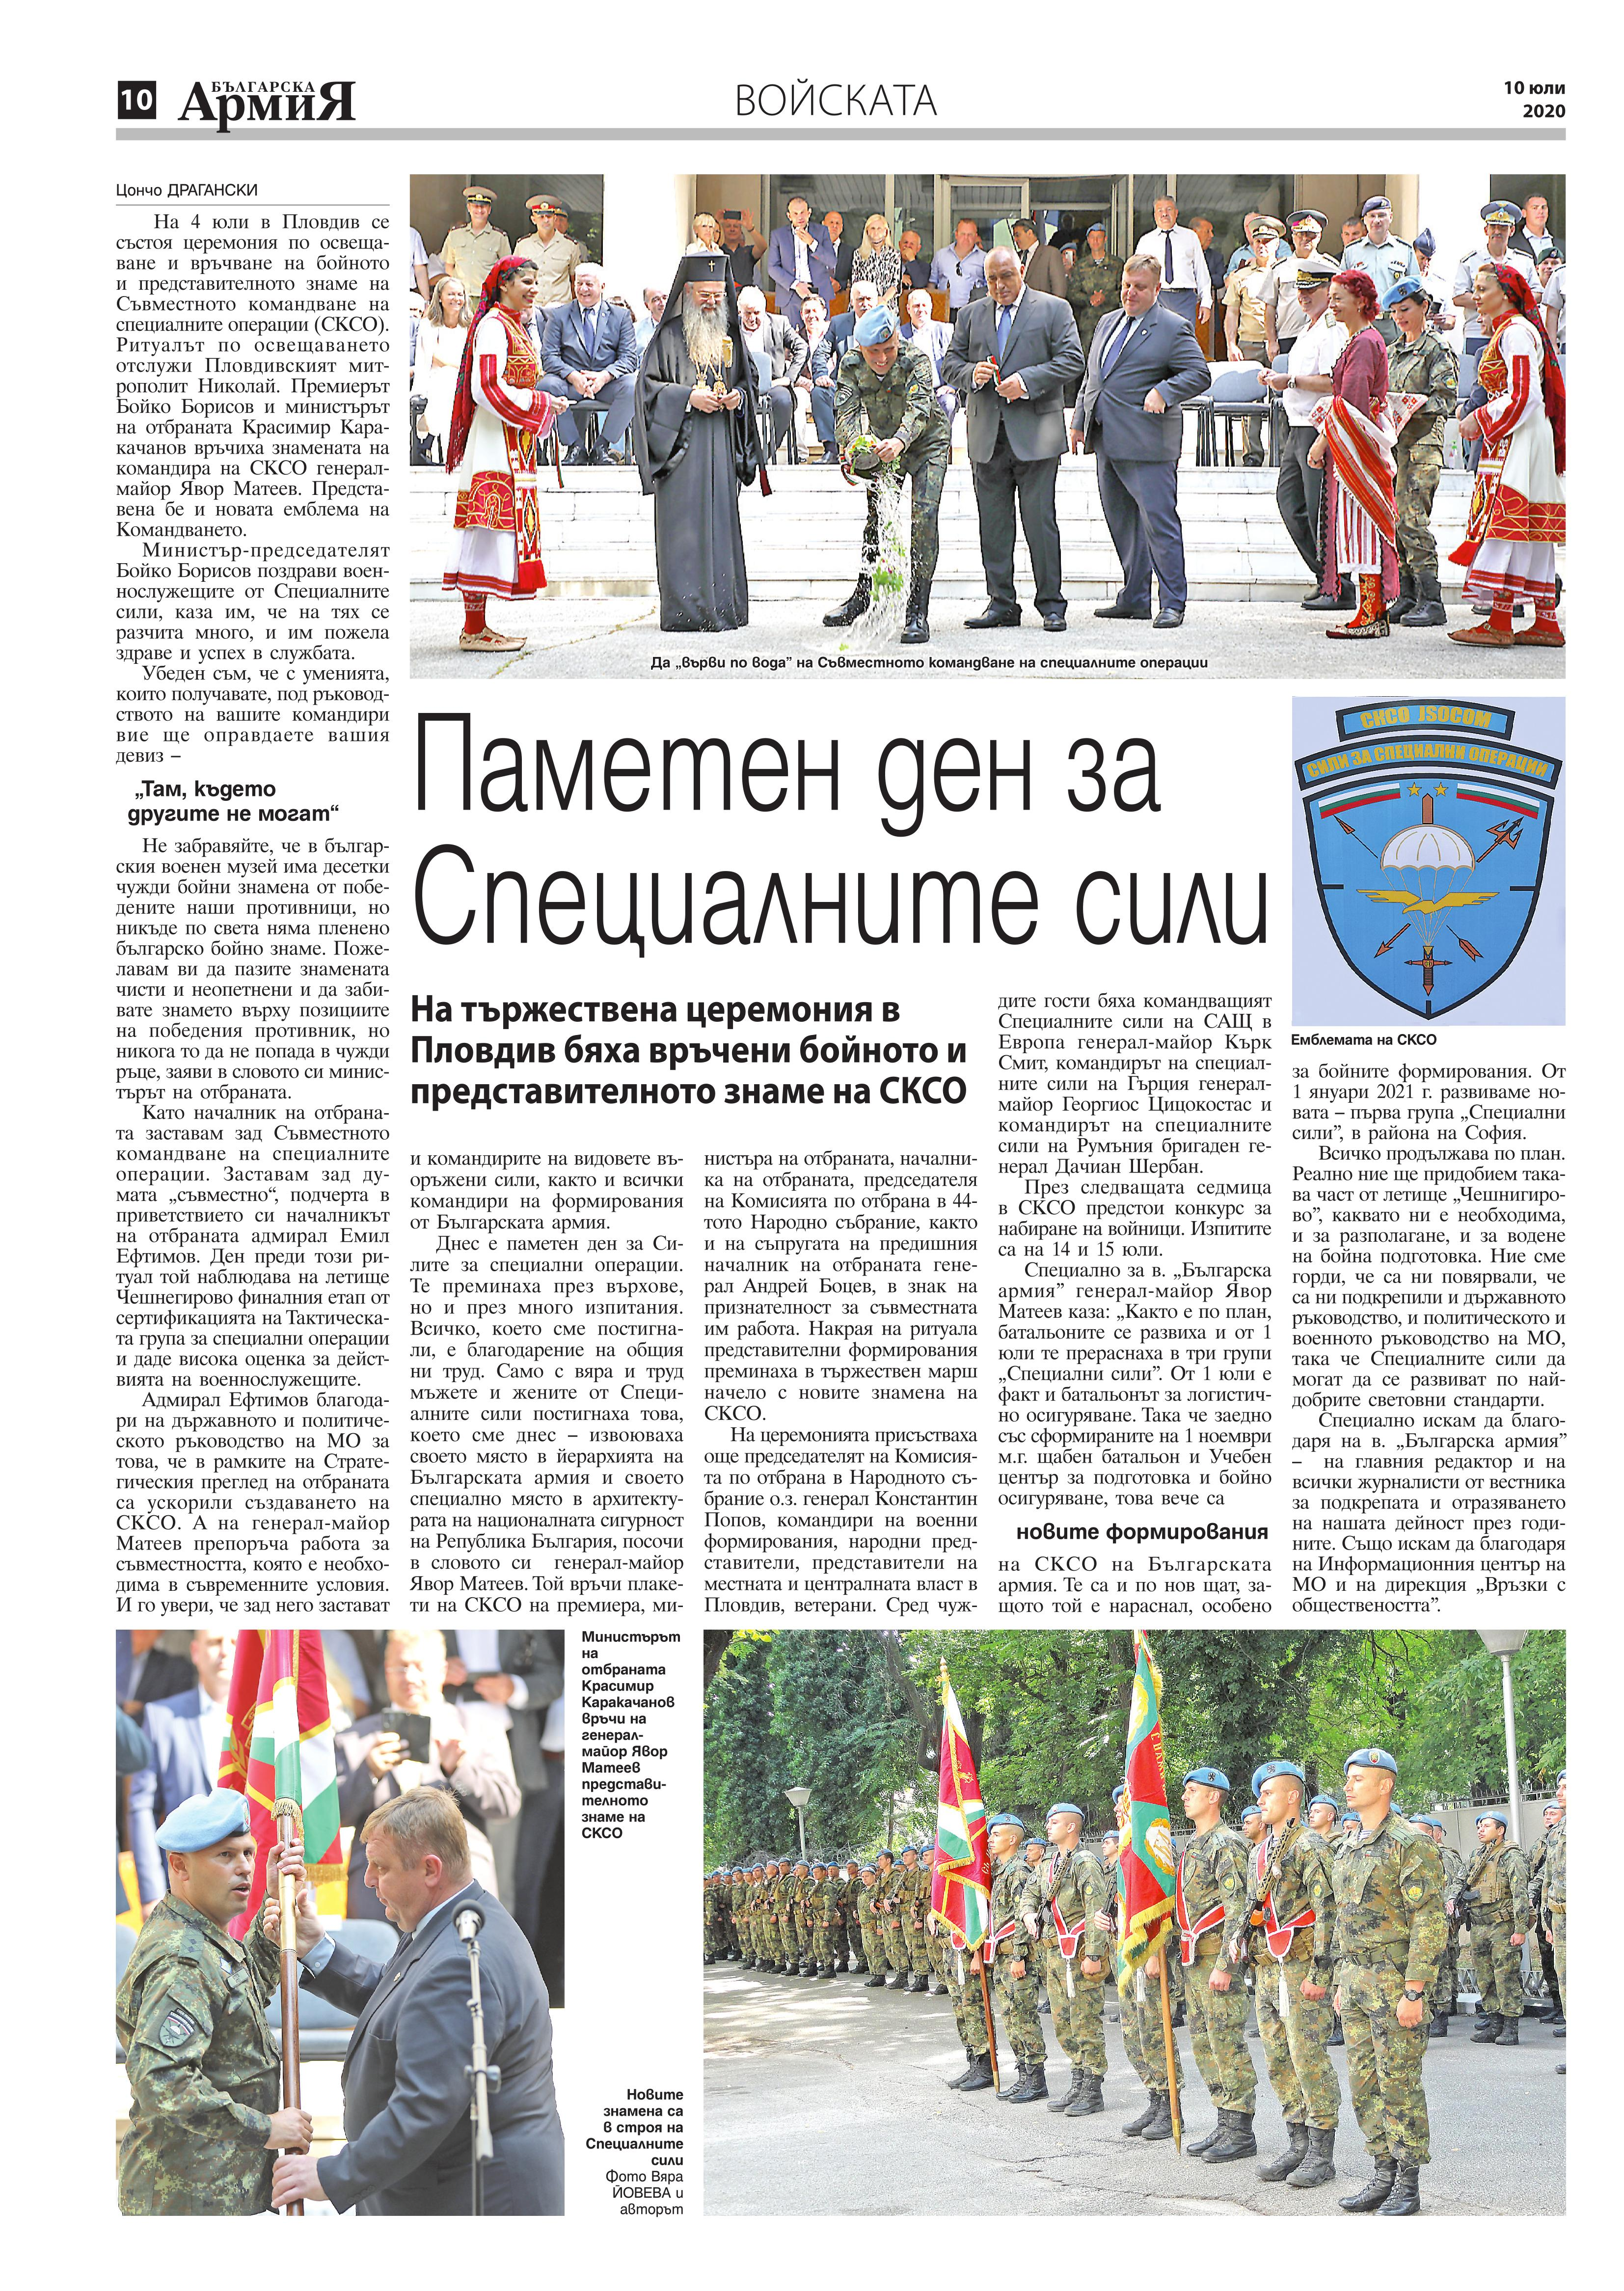 https://www.armymedia.bg/wp-content/uploads/2015/06/10.page1_-146.jpg